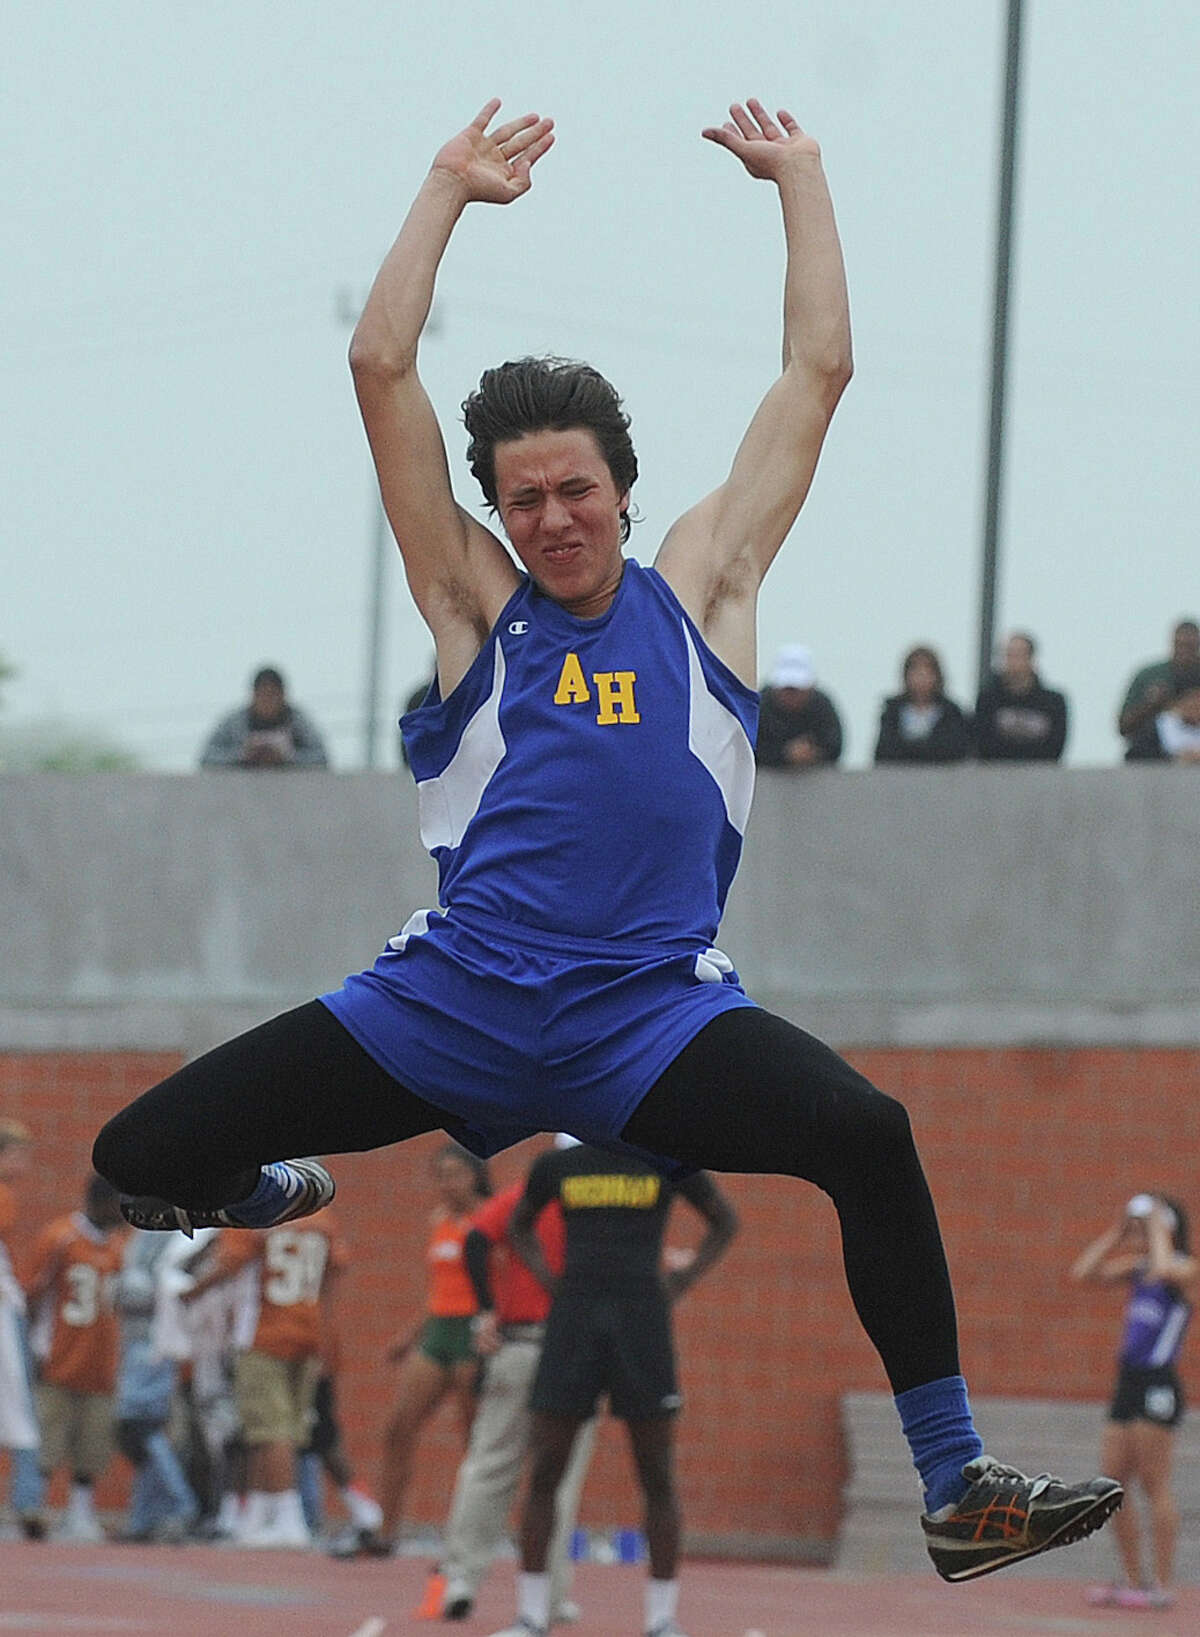 Paul Hernandez of Alamo Heights competes in the men's 4A long jump during the Region IV-4A/5A track meet at Heroes Stadium on Friday, April 26, 2013.